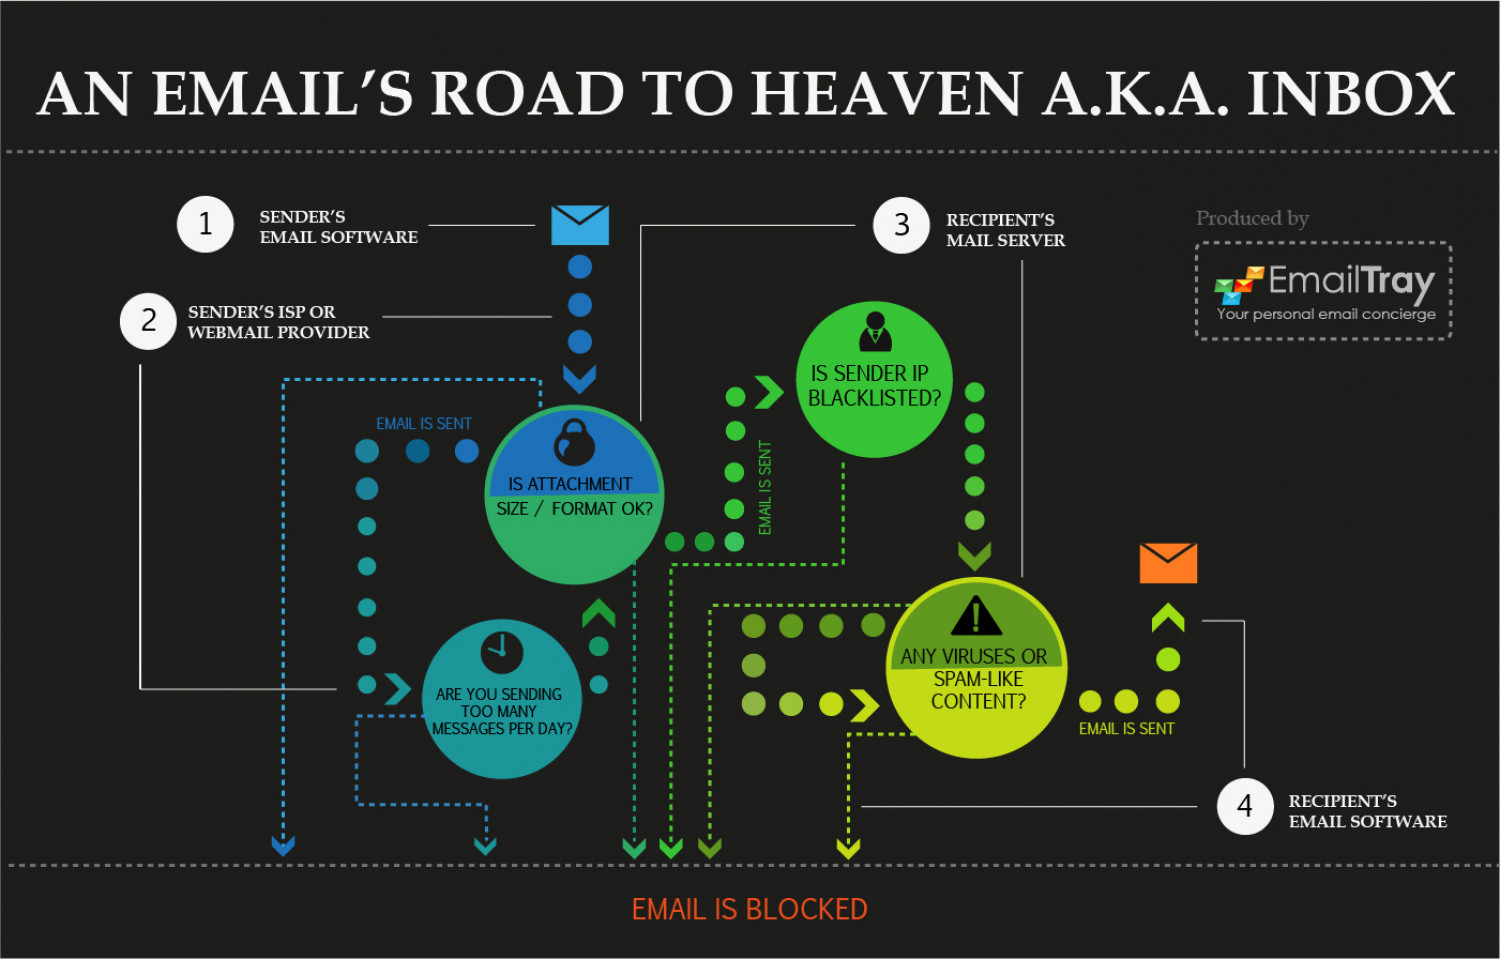 An Email's Road to Heaven a.k.a. Inbox Infographic